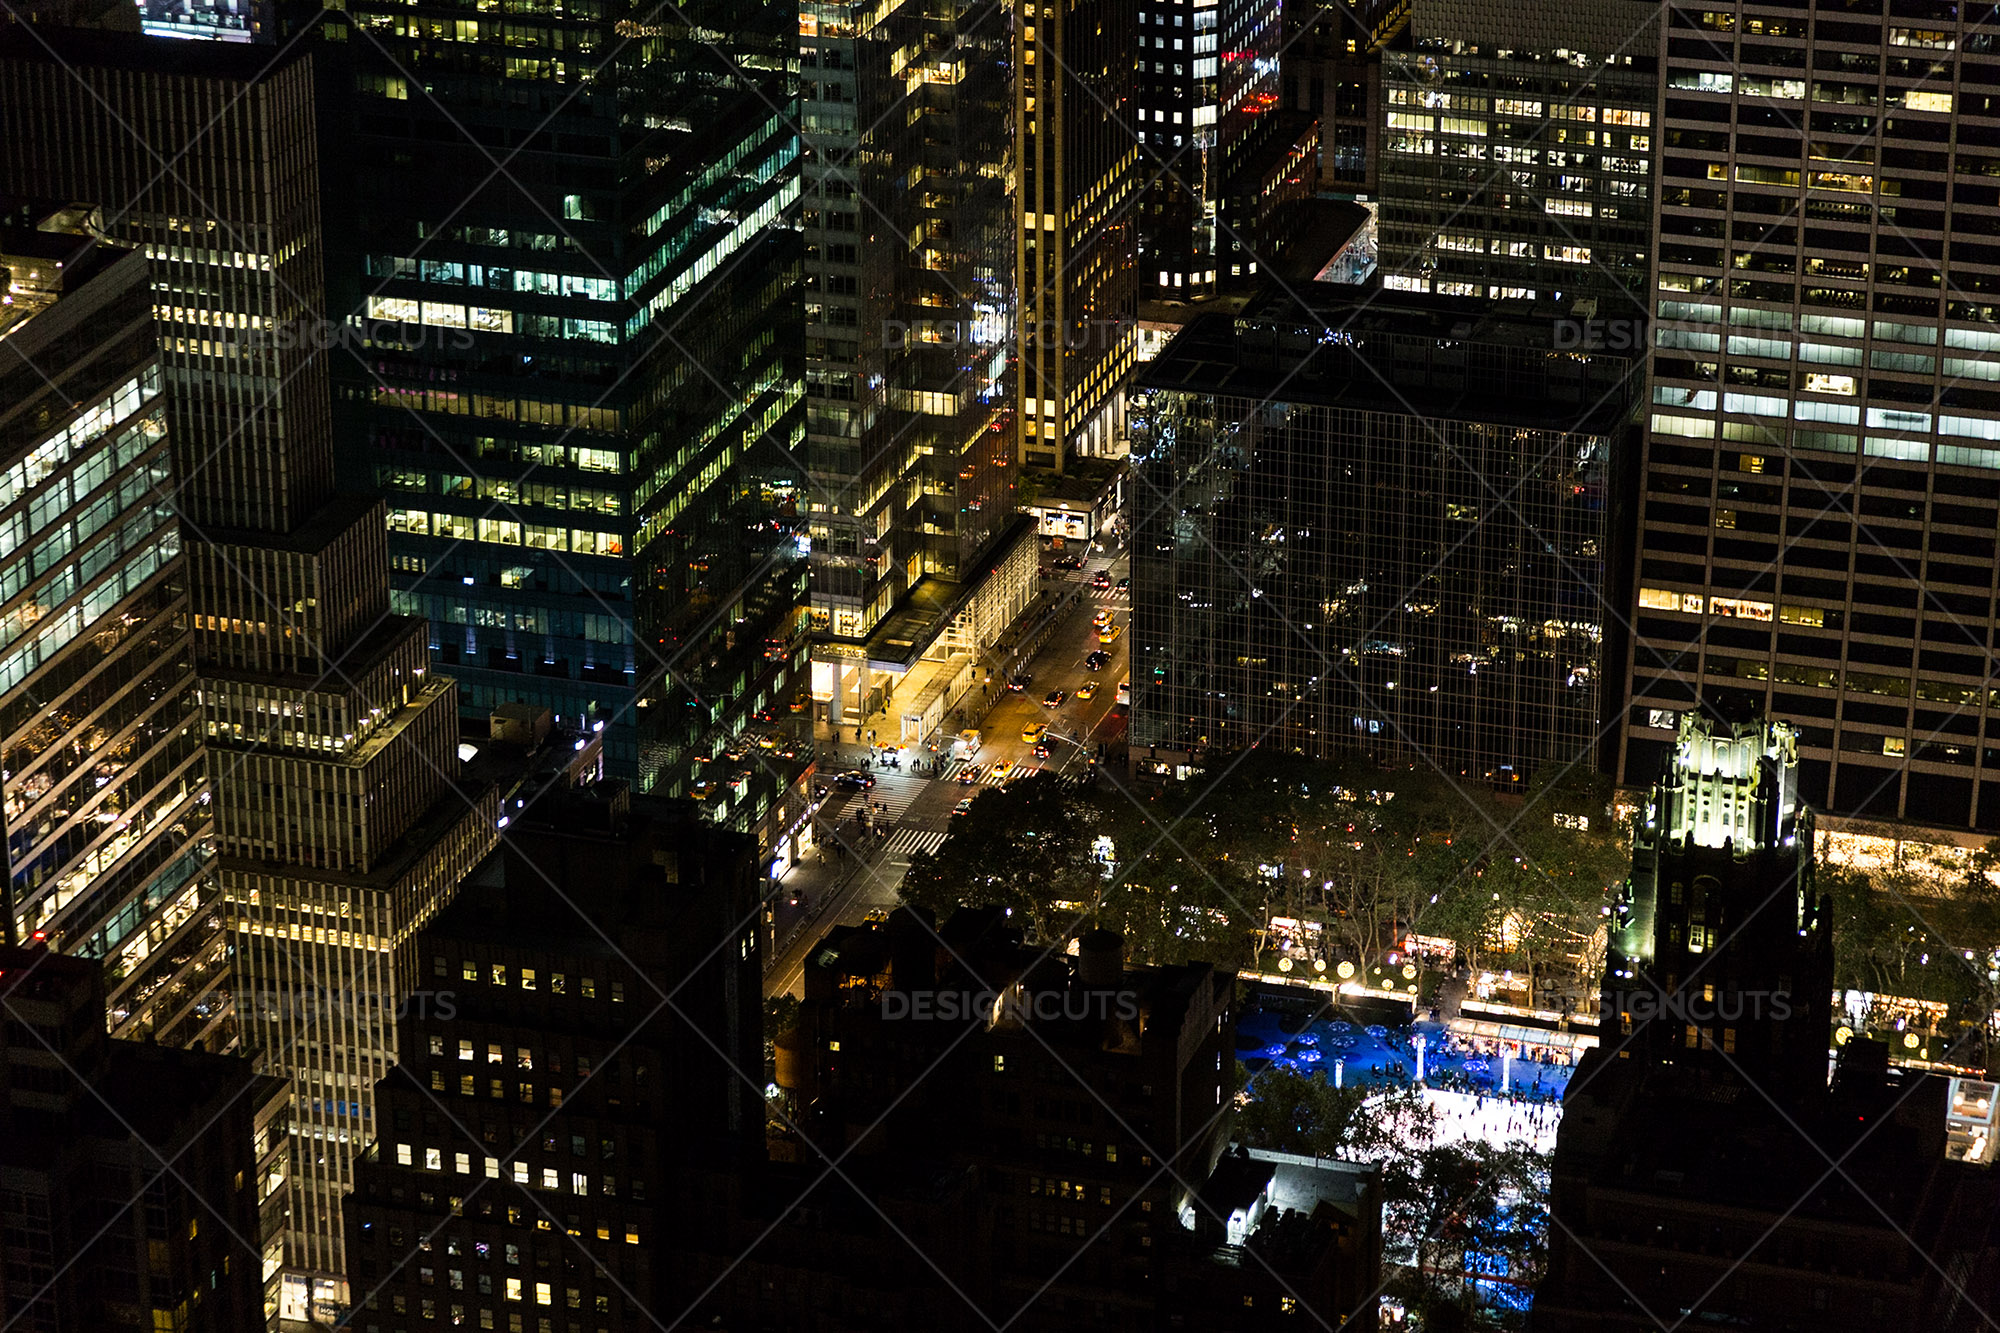 Aerial View Of New York City Skyscrapers Lit Up At Night 8